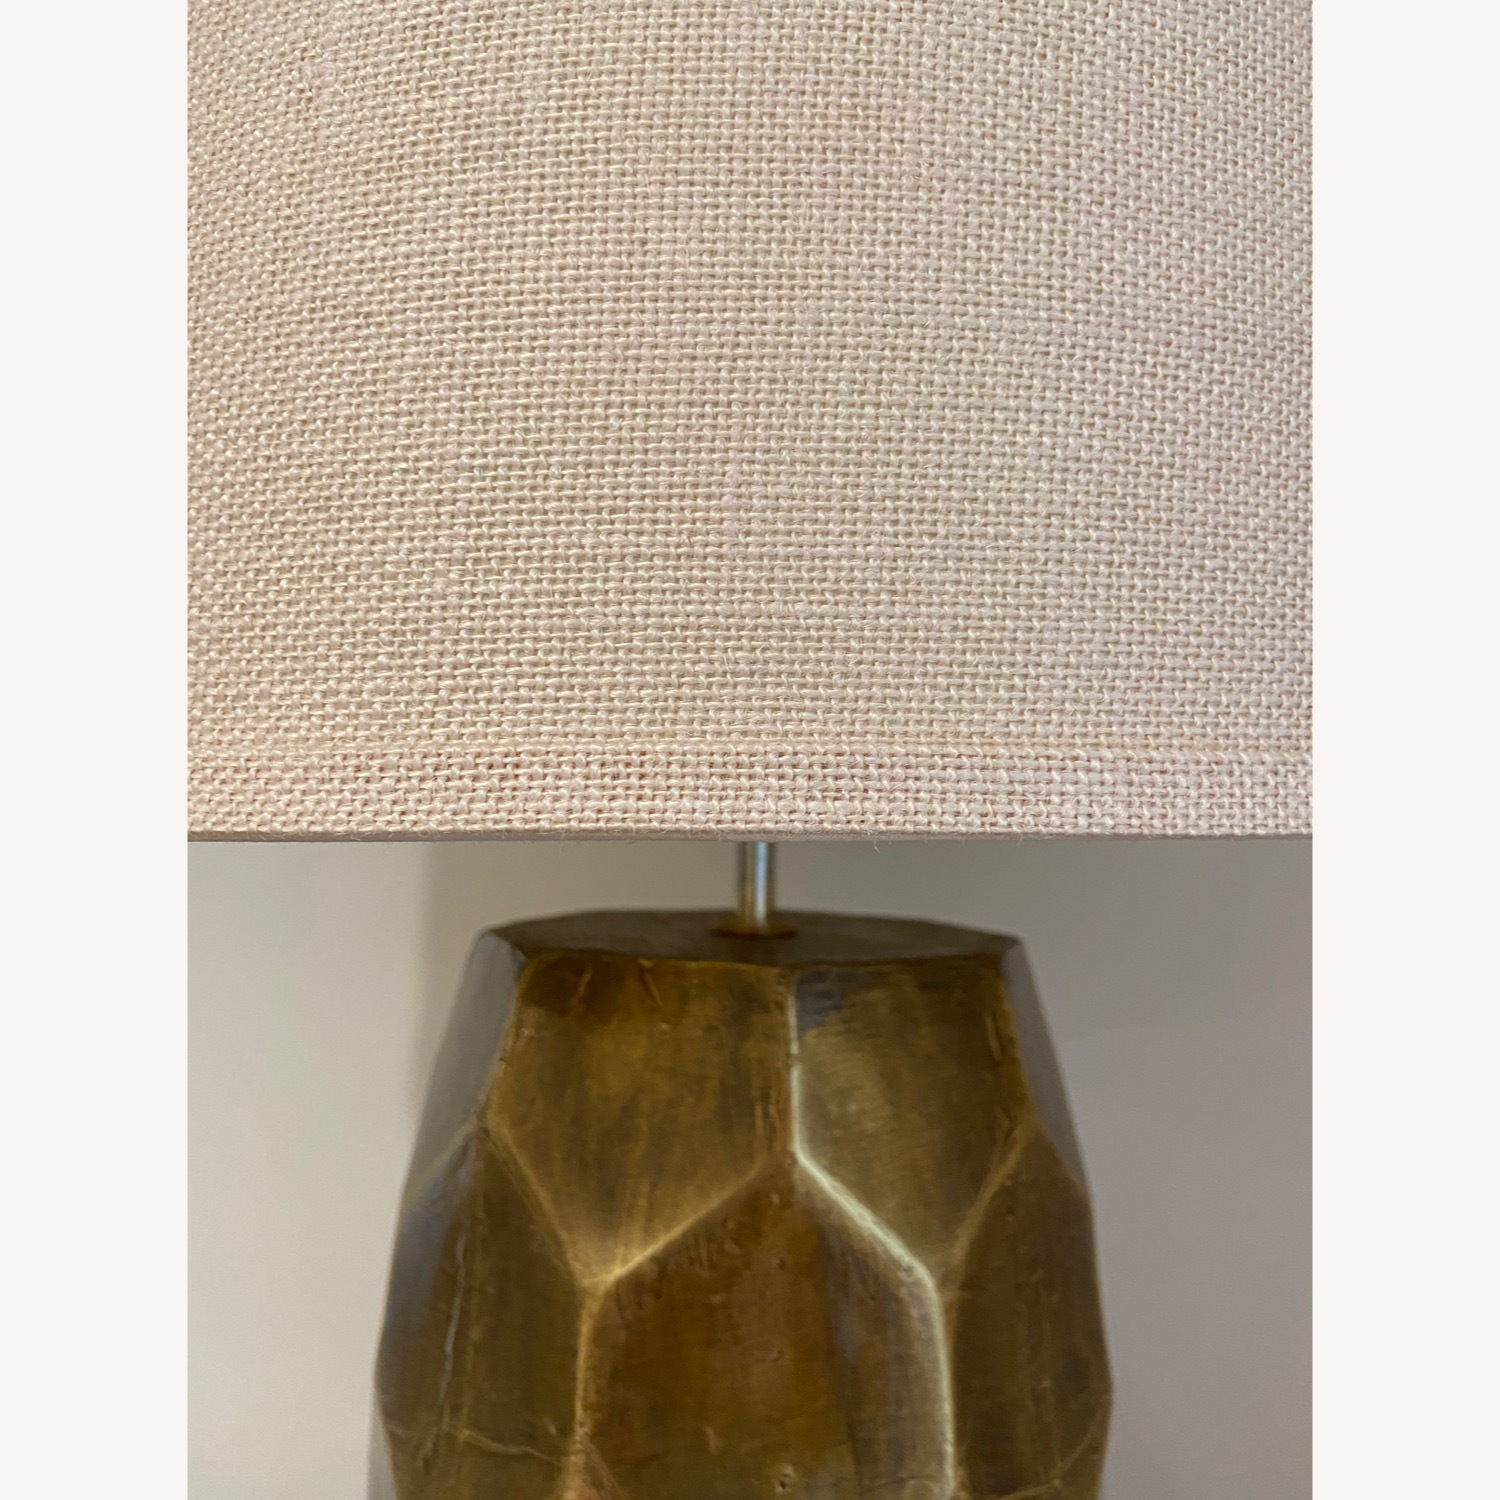 Pottery Barn Hammered Golden Honeycomb Lamps (2) - image-4